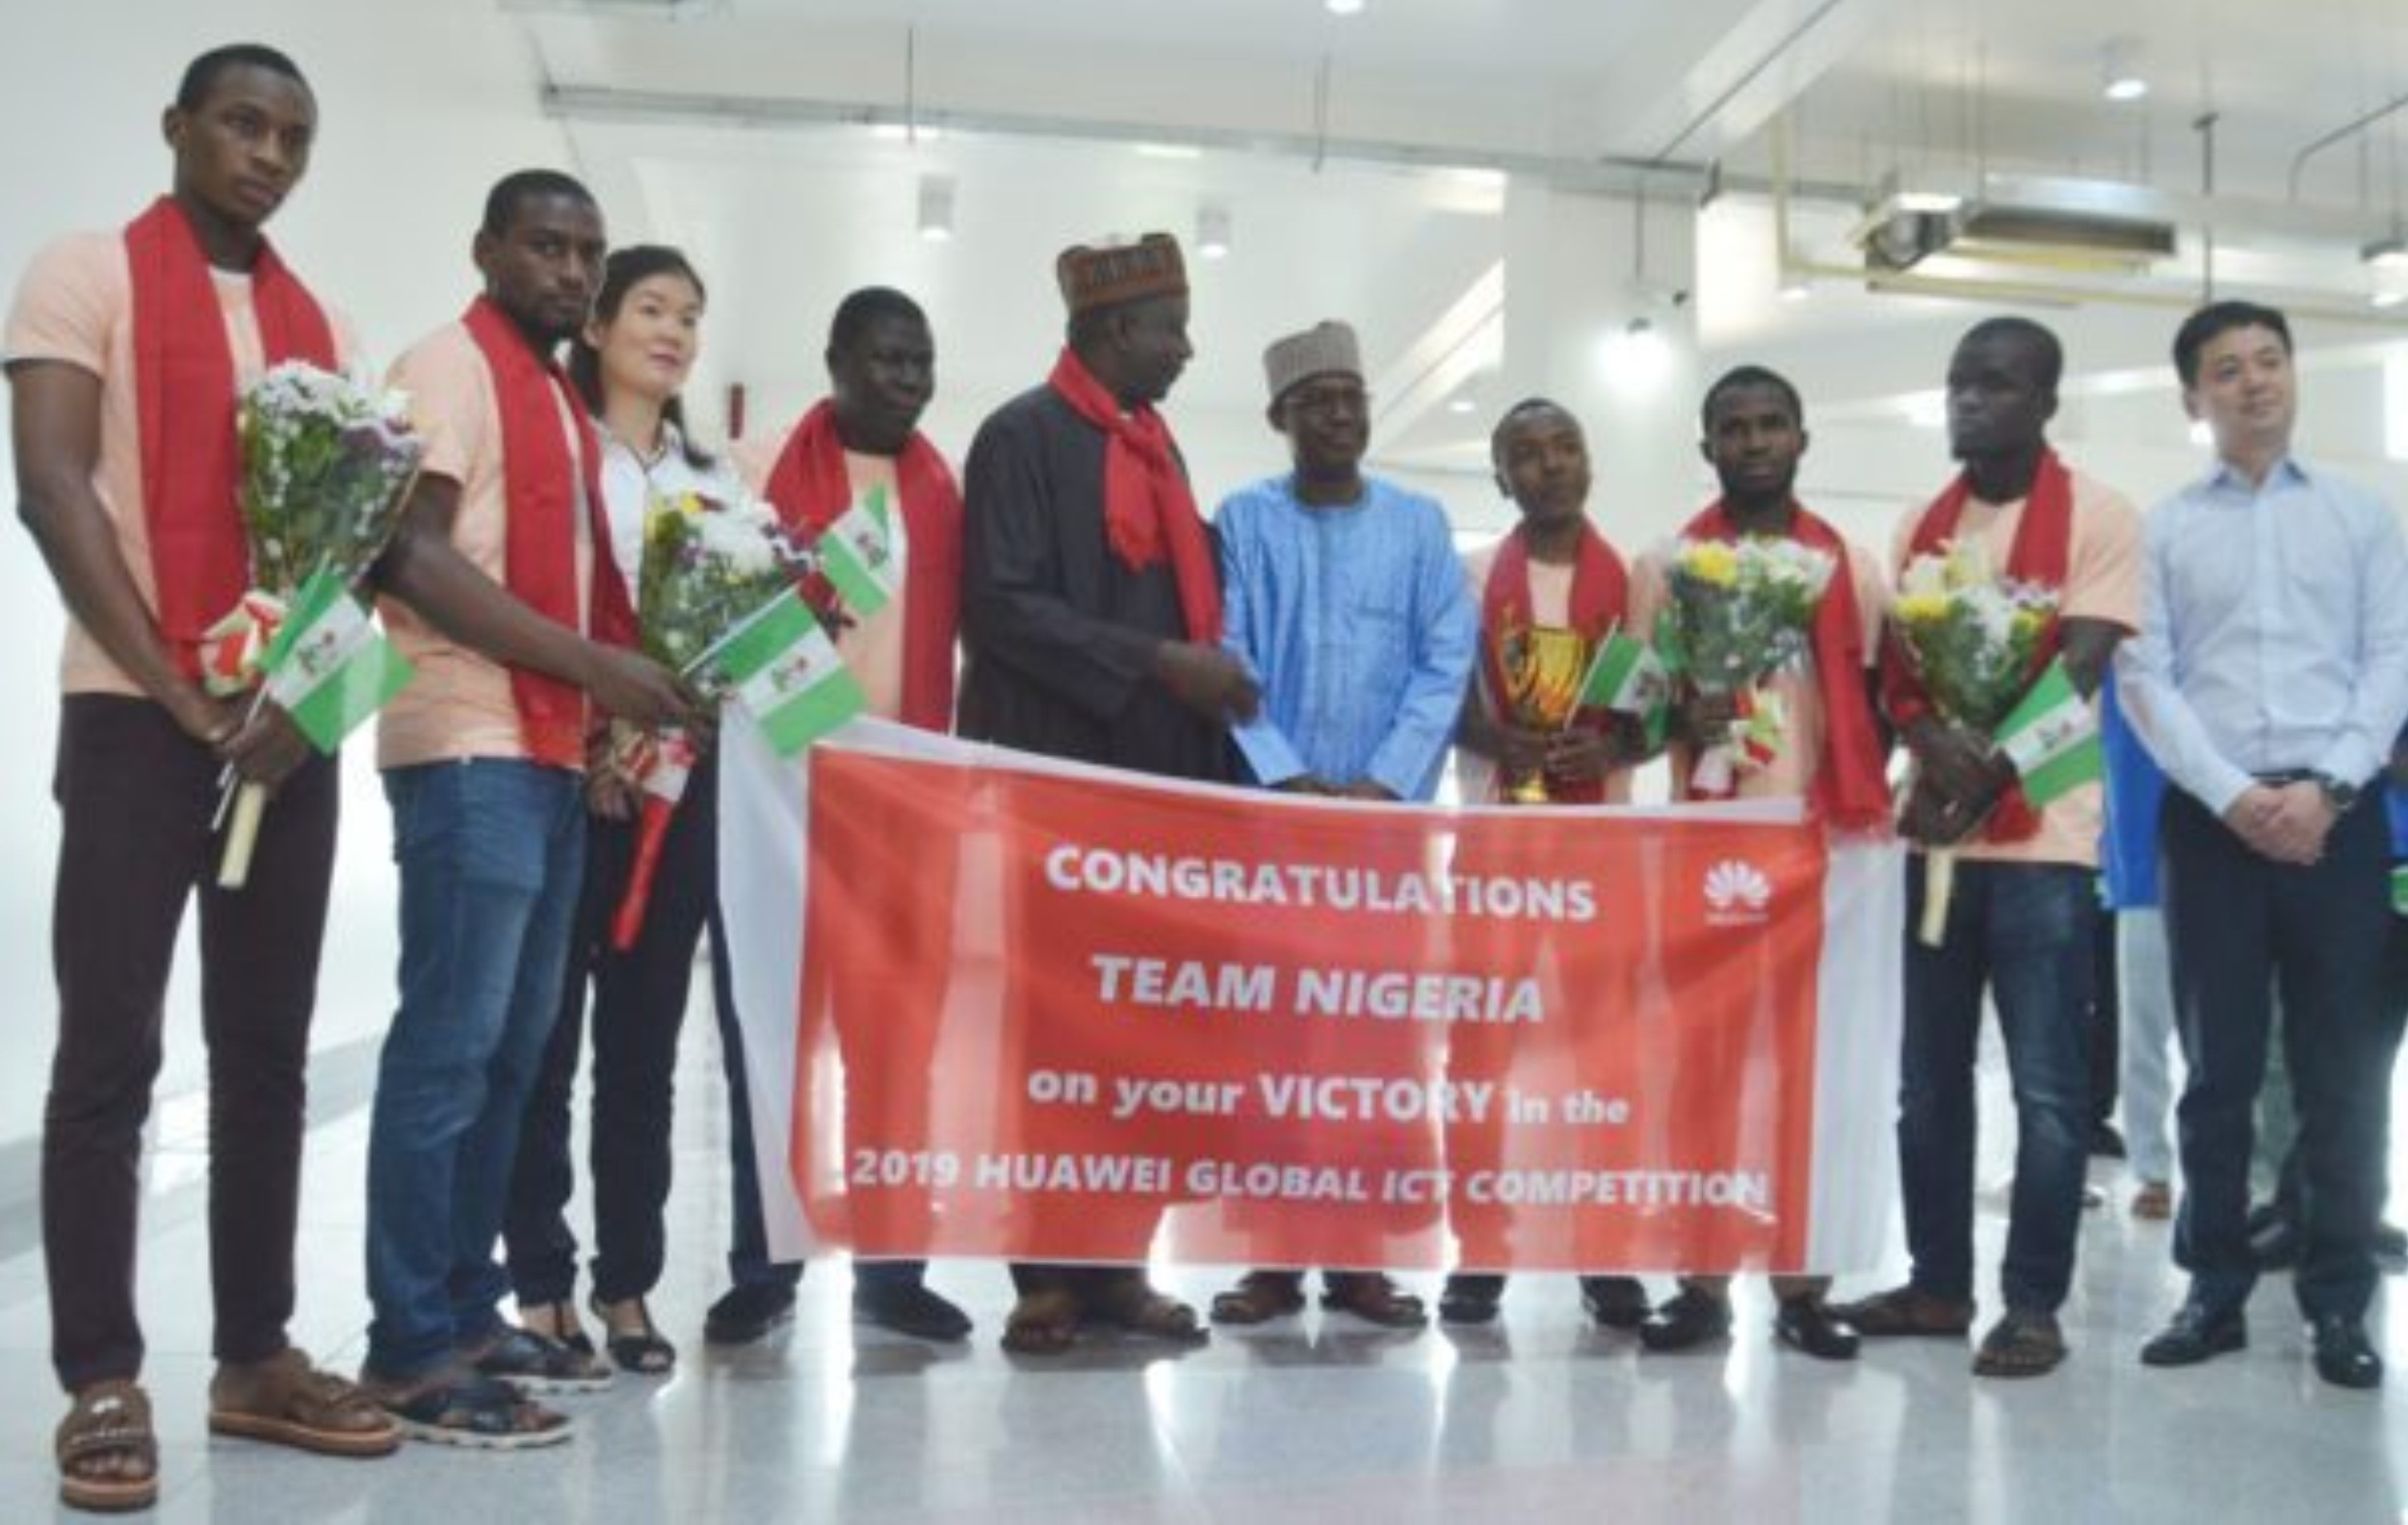 Nigerian team excels in China global ICT competition